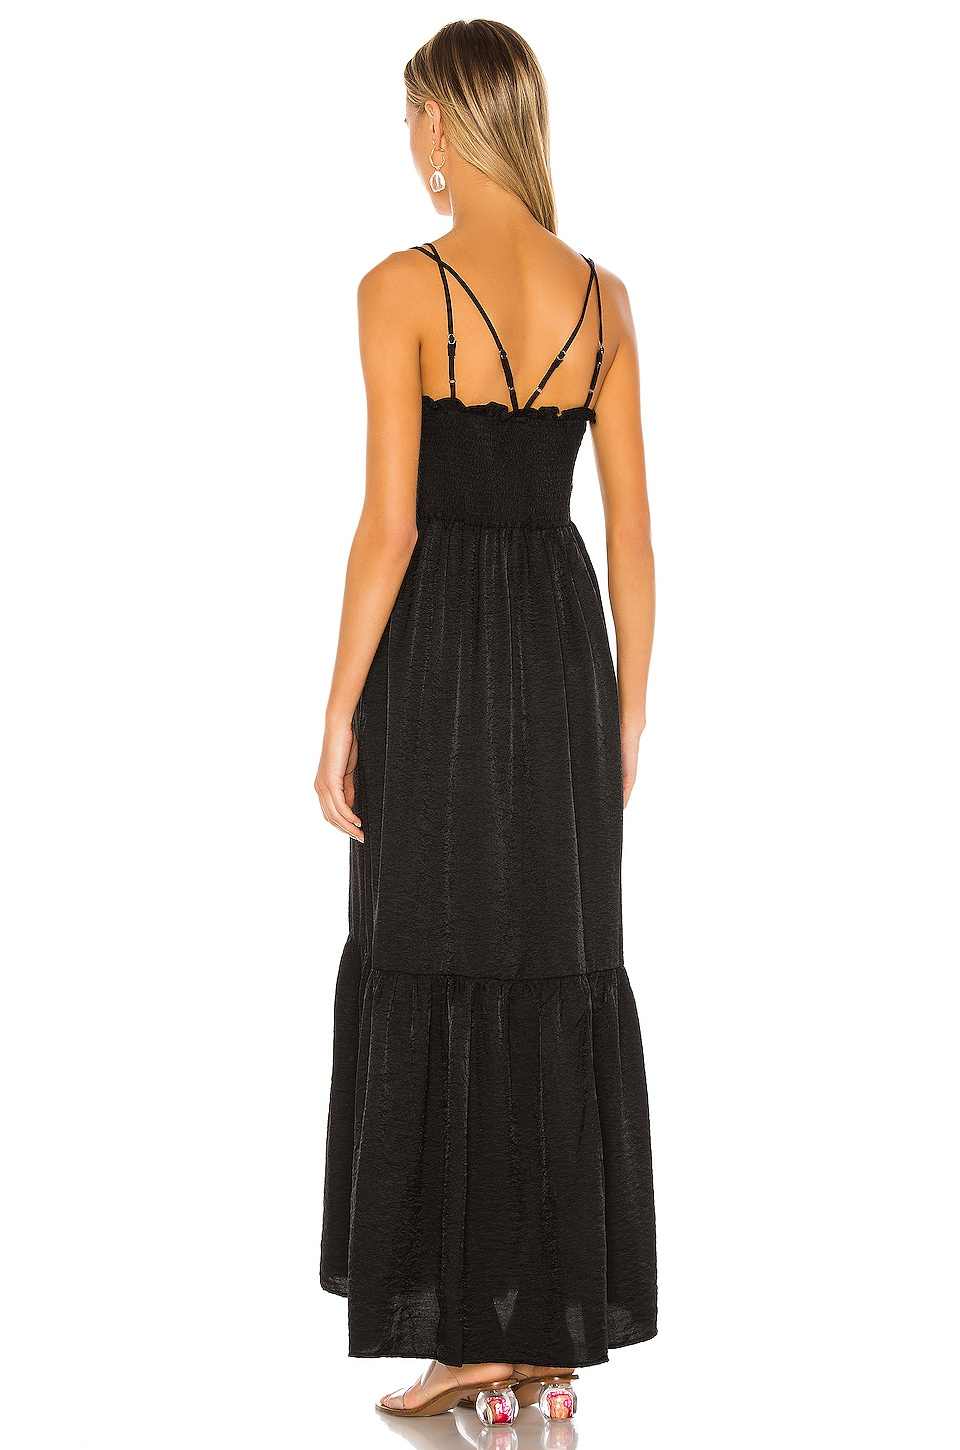 Blaque Maxi Dress, view 3, click to view large image.